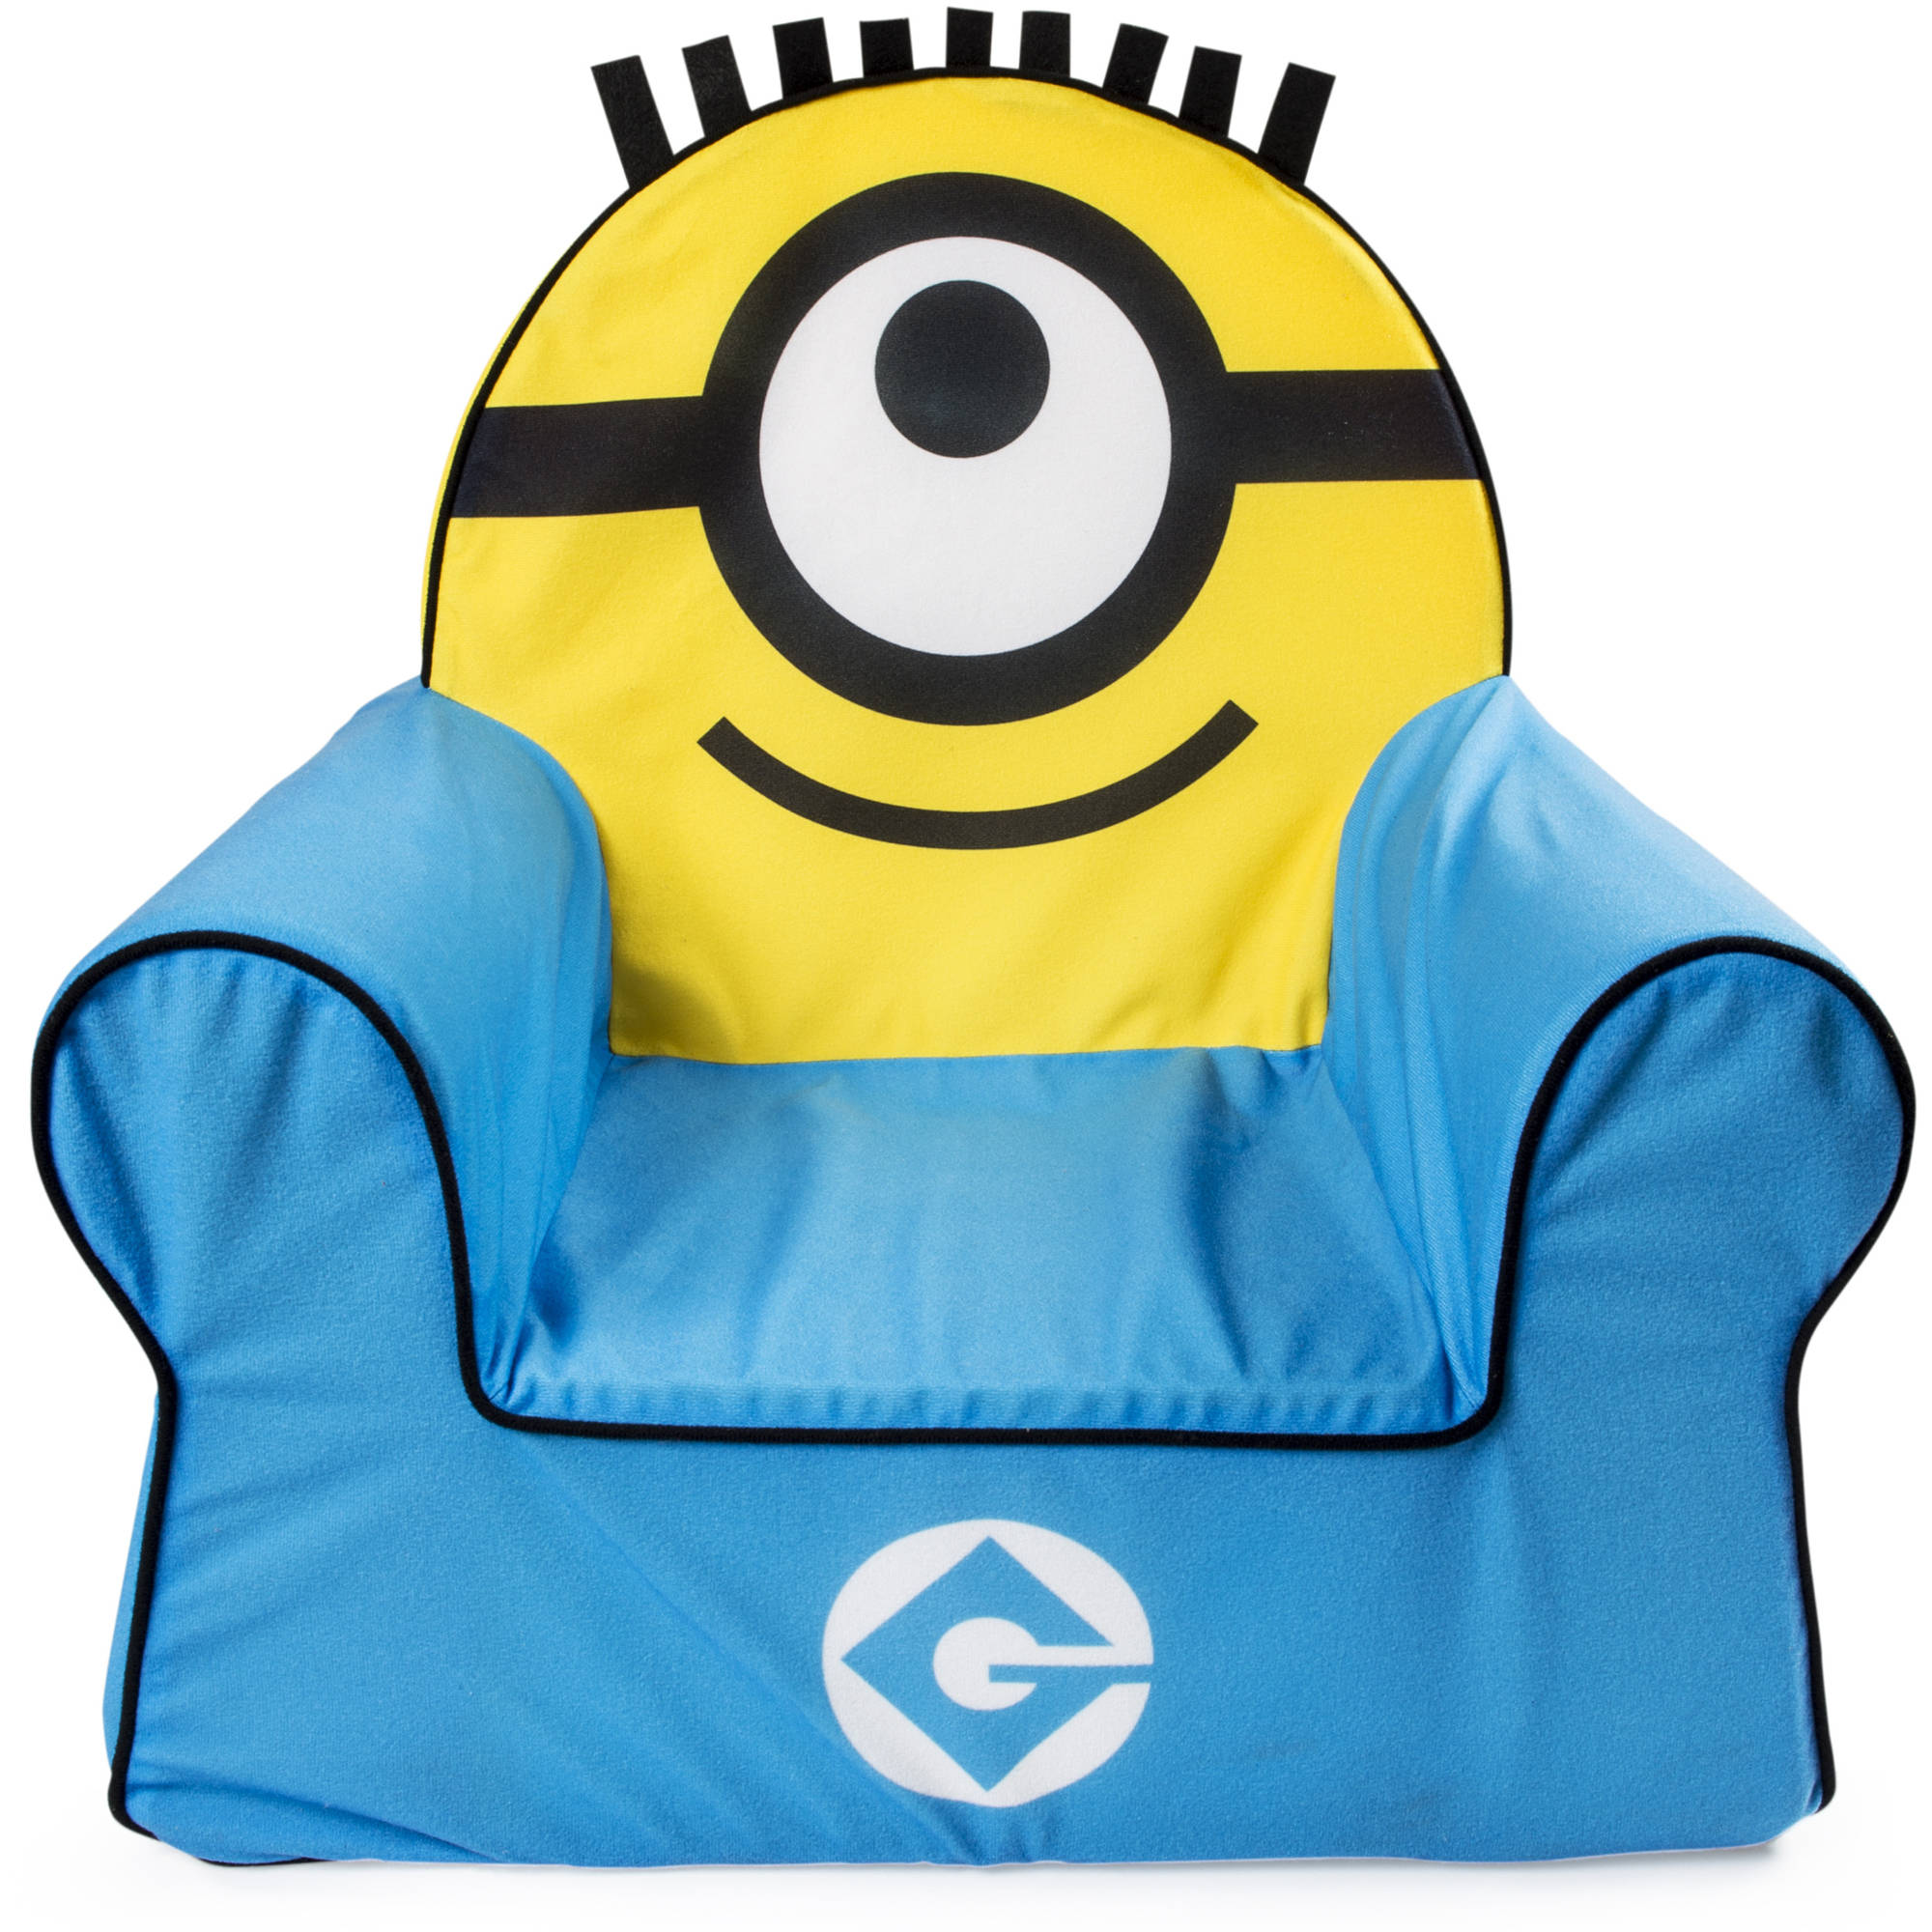 Marshmallow Furniture Comfy Character Chair, Minions